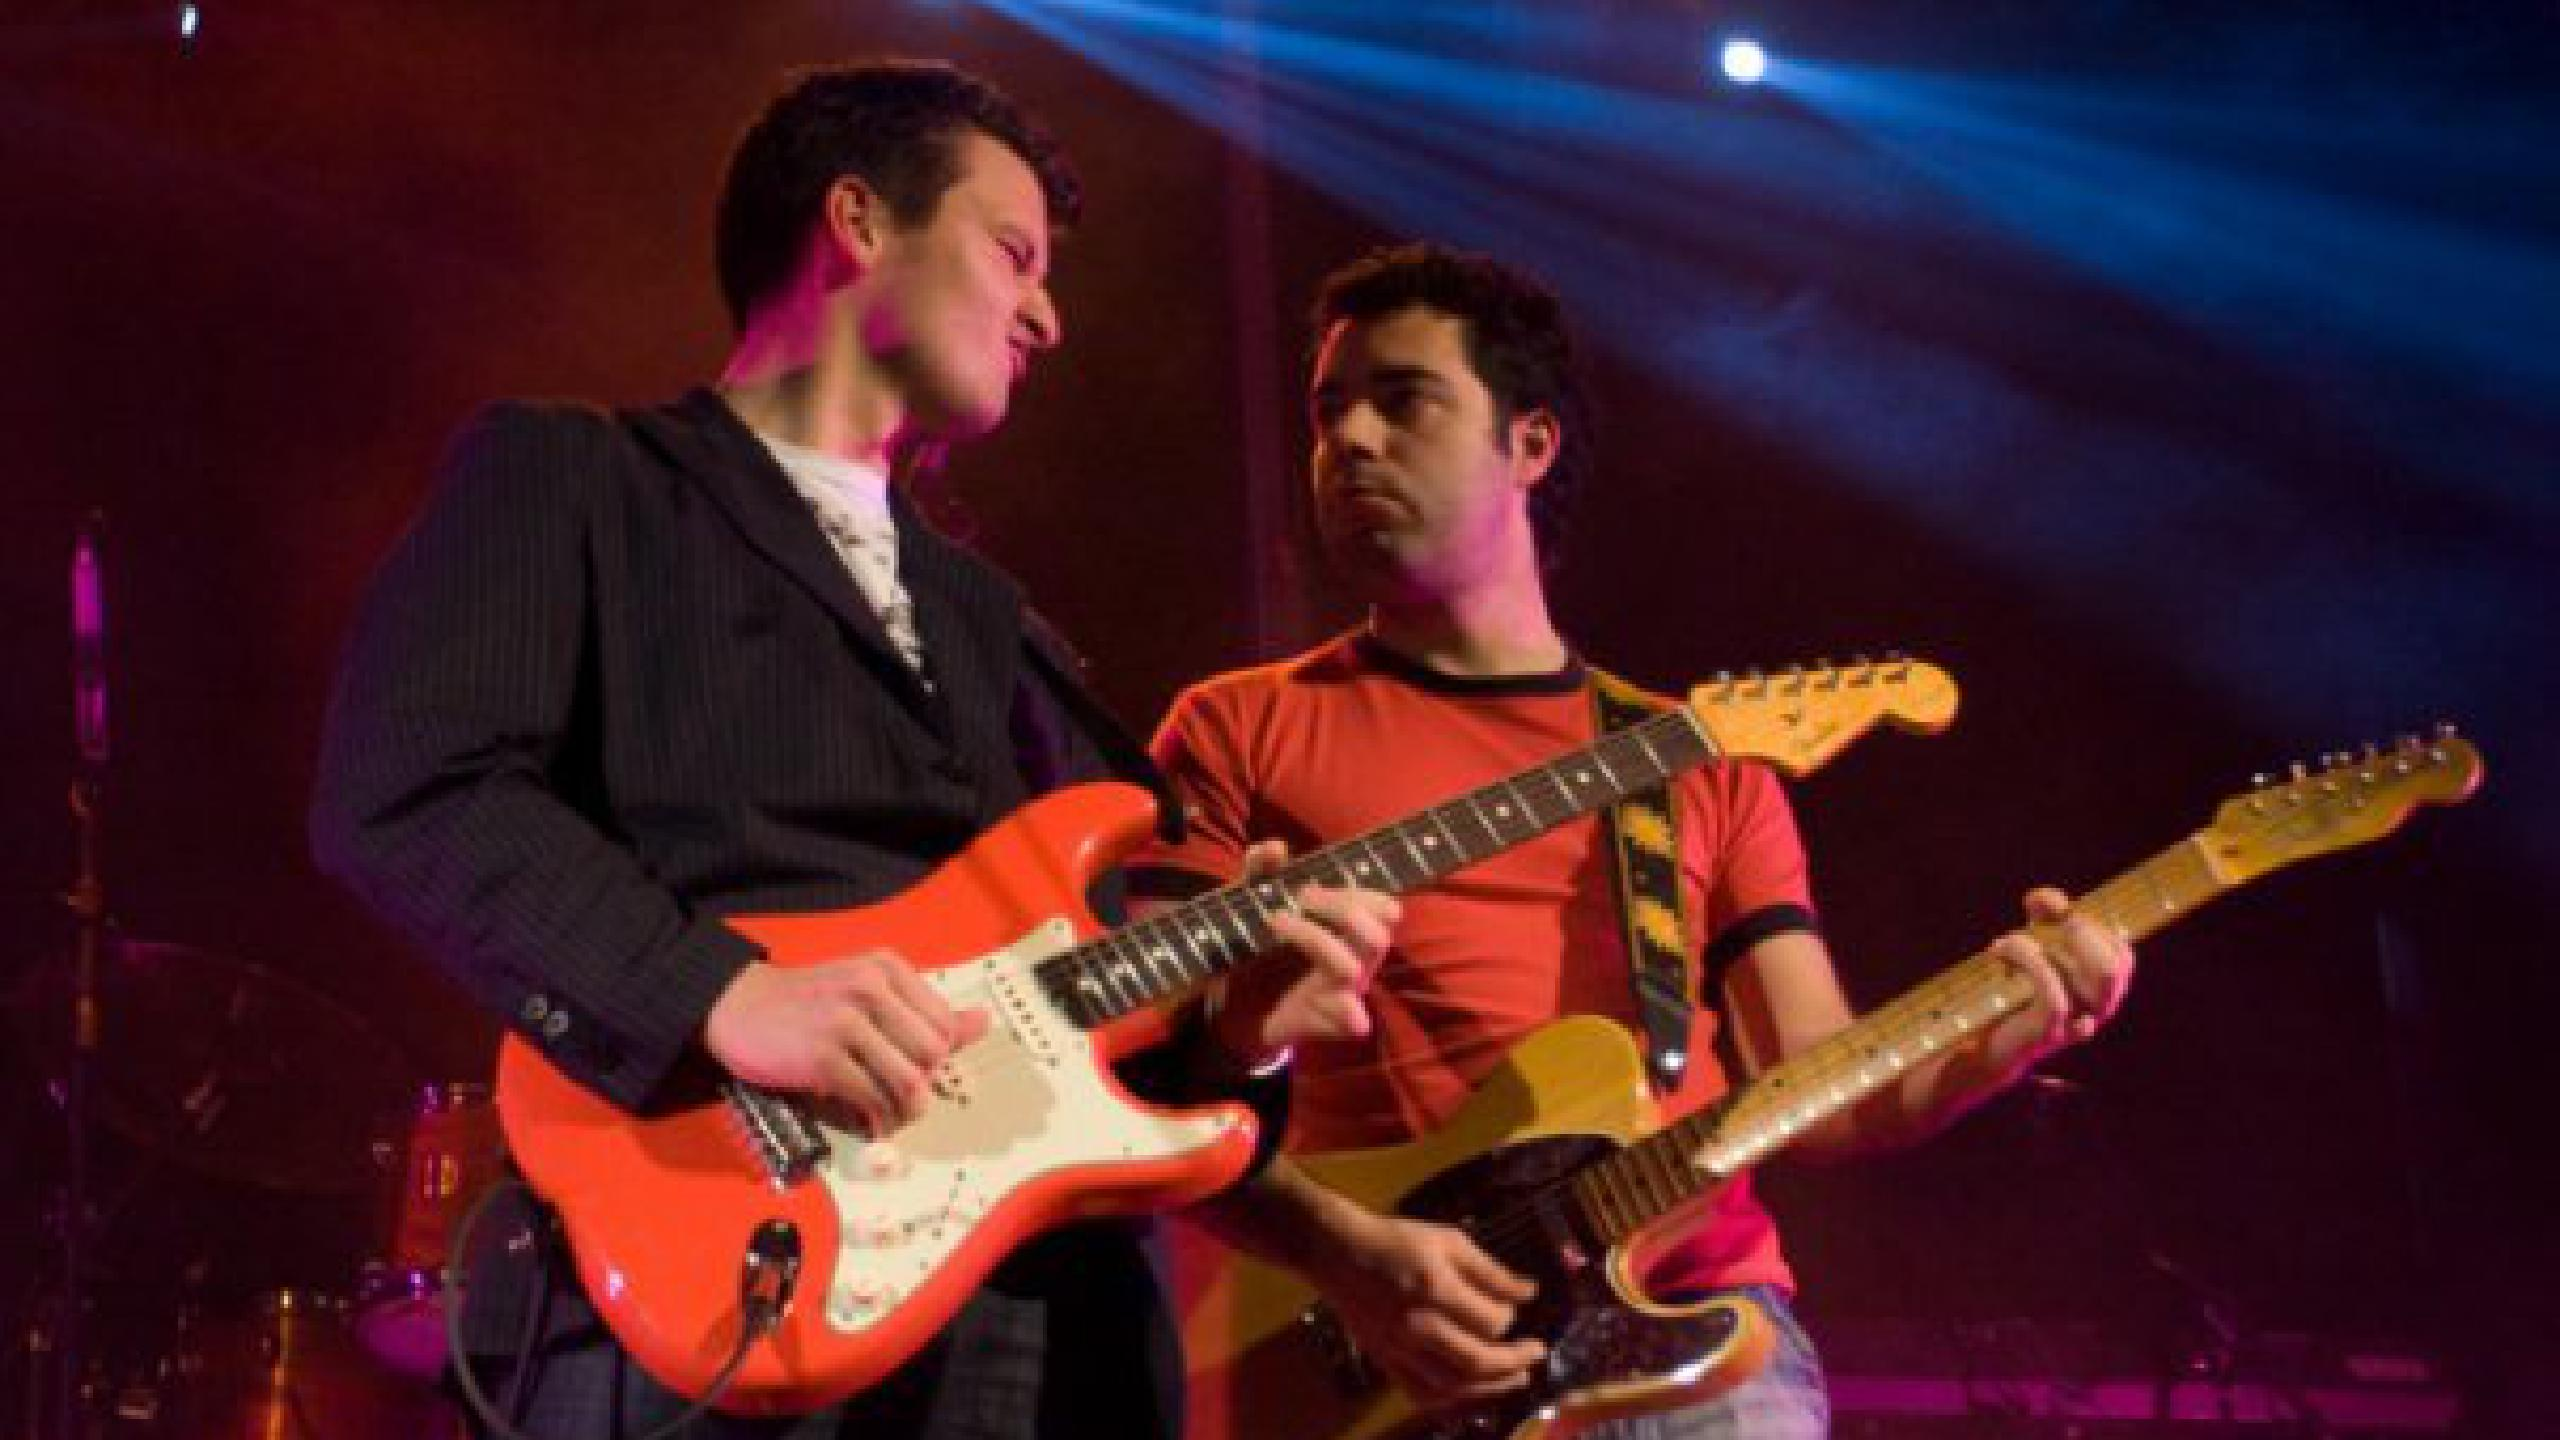 Brothers In Band Tributo A Dire Straits Tour Dates 2019 2020 Brothers In Band Tributo A Dire Straits Tickets And Concerts Wegow